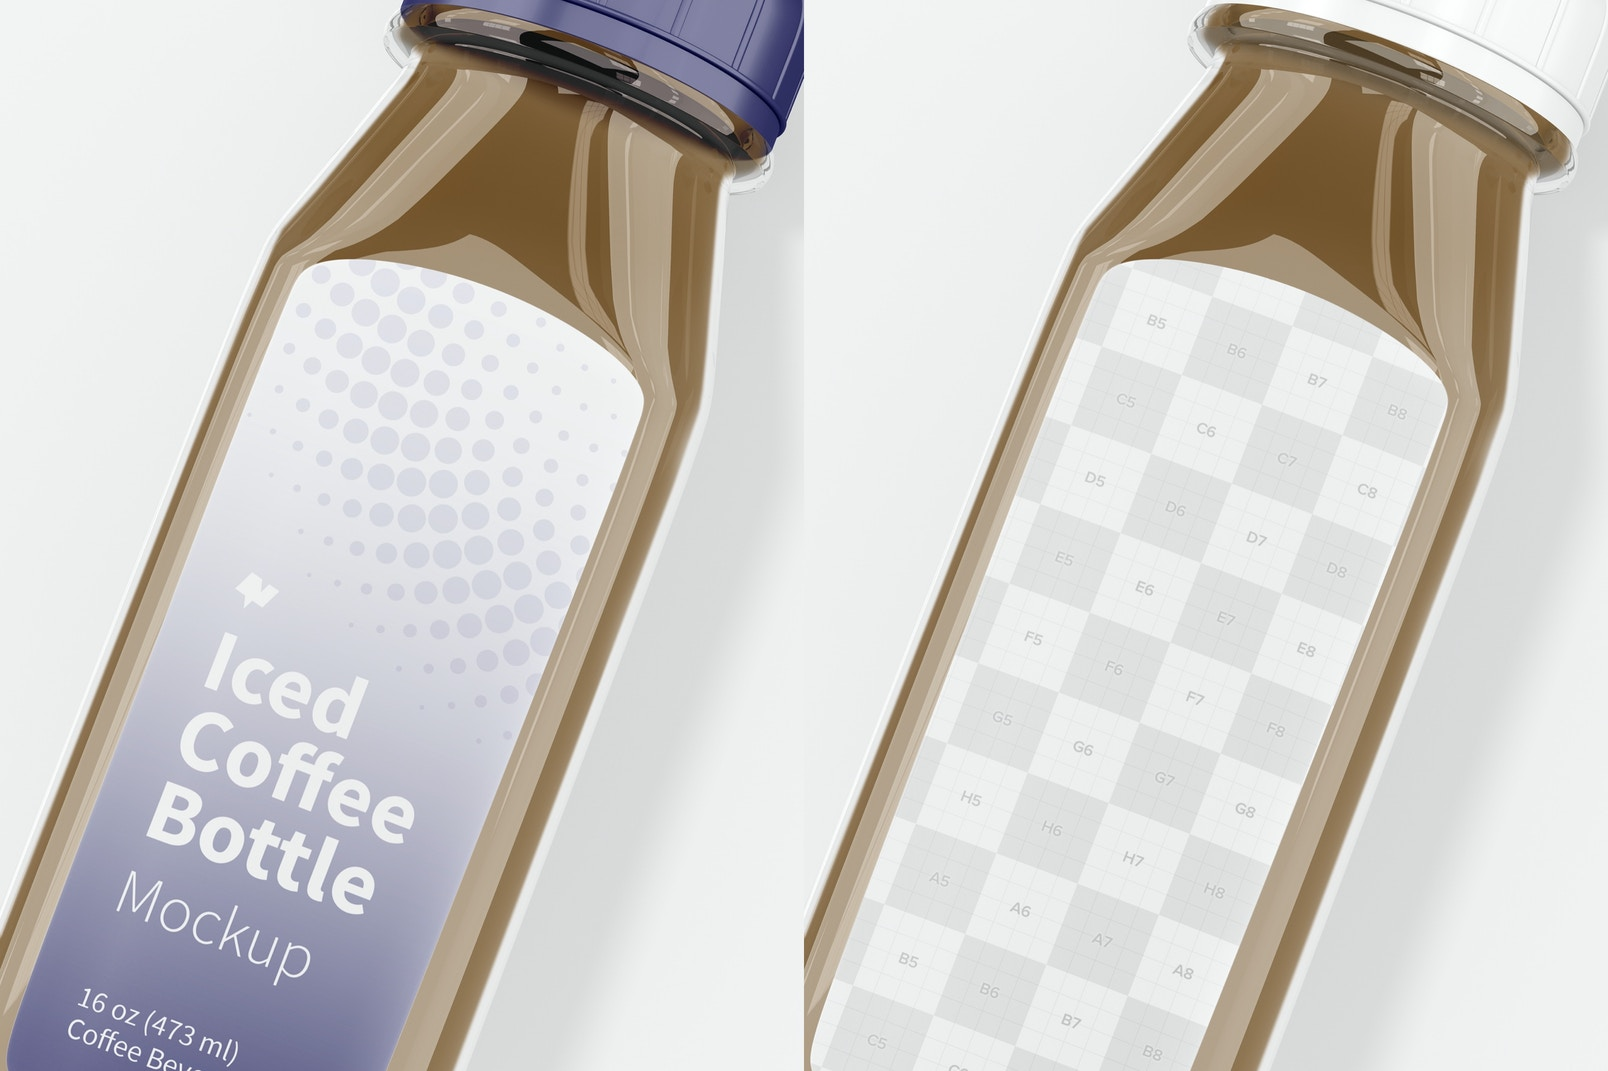 Iced Coffee Glass Bottle Mockup, Close Up